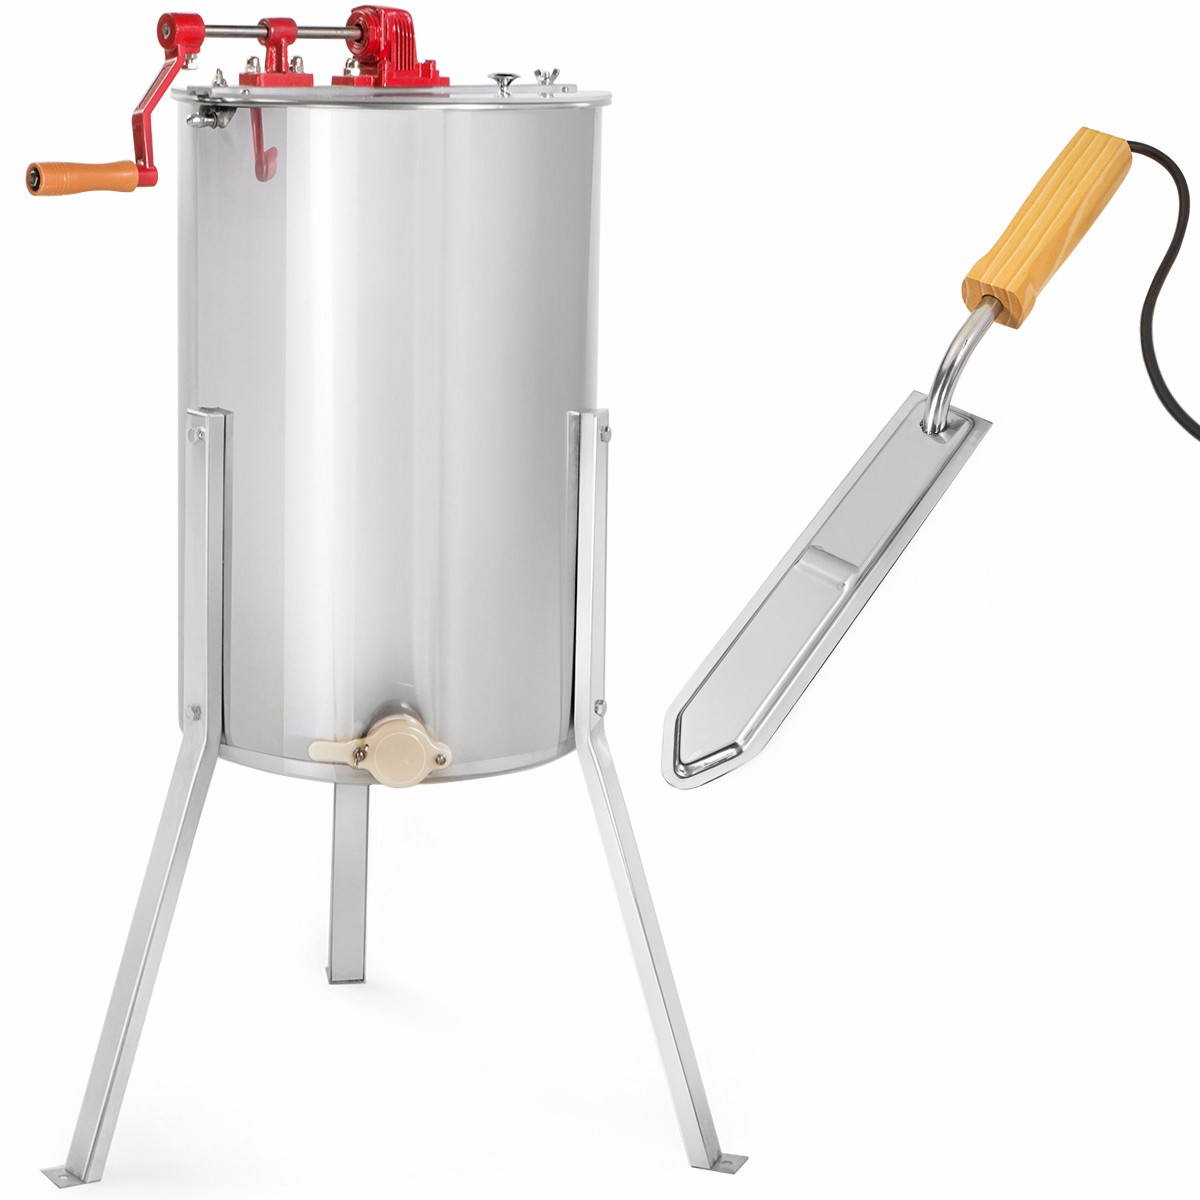 XtremepowerUS 2-Frame Stainless Steel Honey Extractor w/ Electric Uncapping Knife